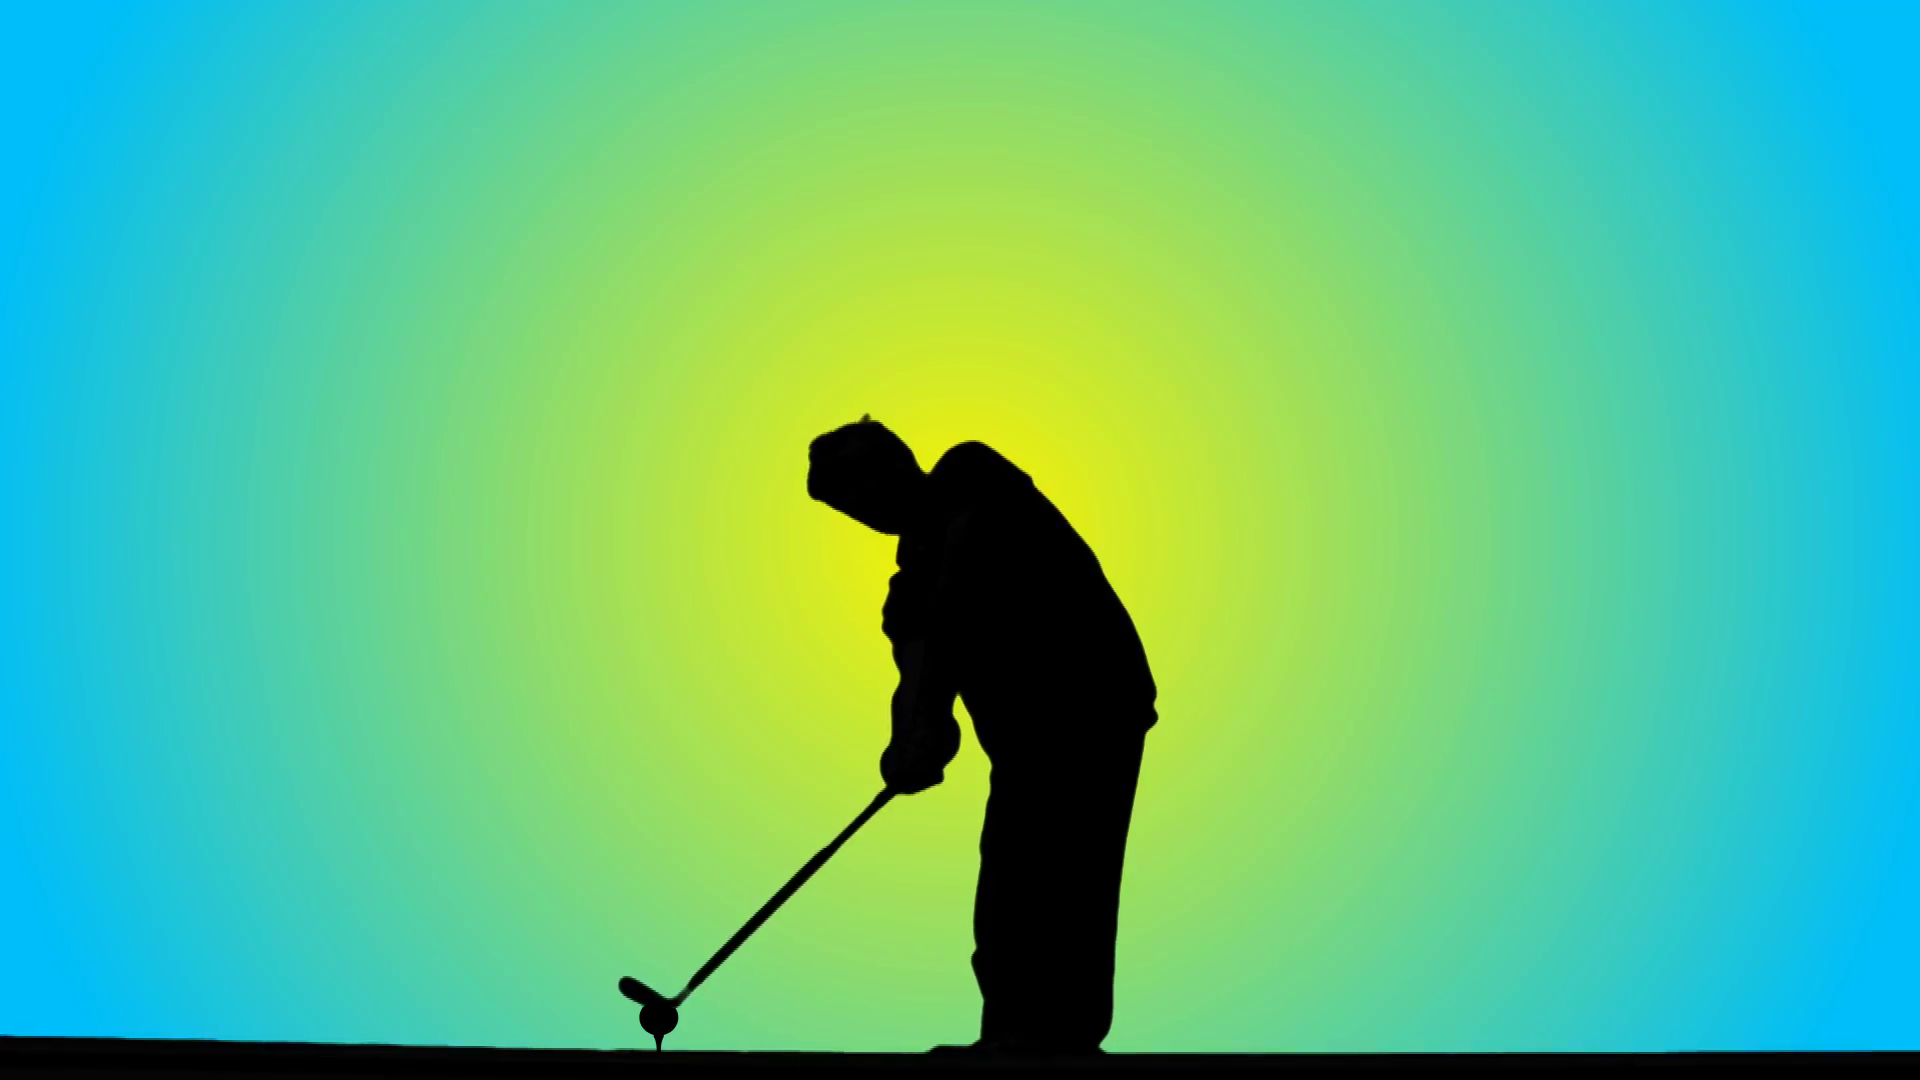 1920x1080 Golfer Silhouetted Against Bright Sun Blue Sky Abstract Background